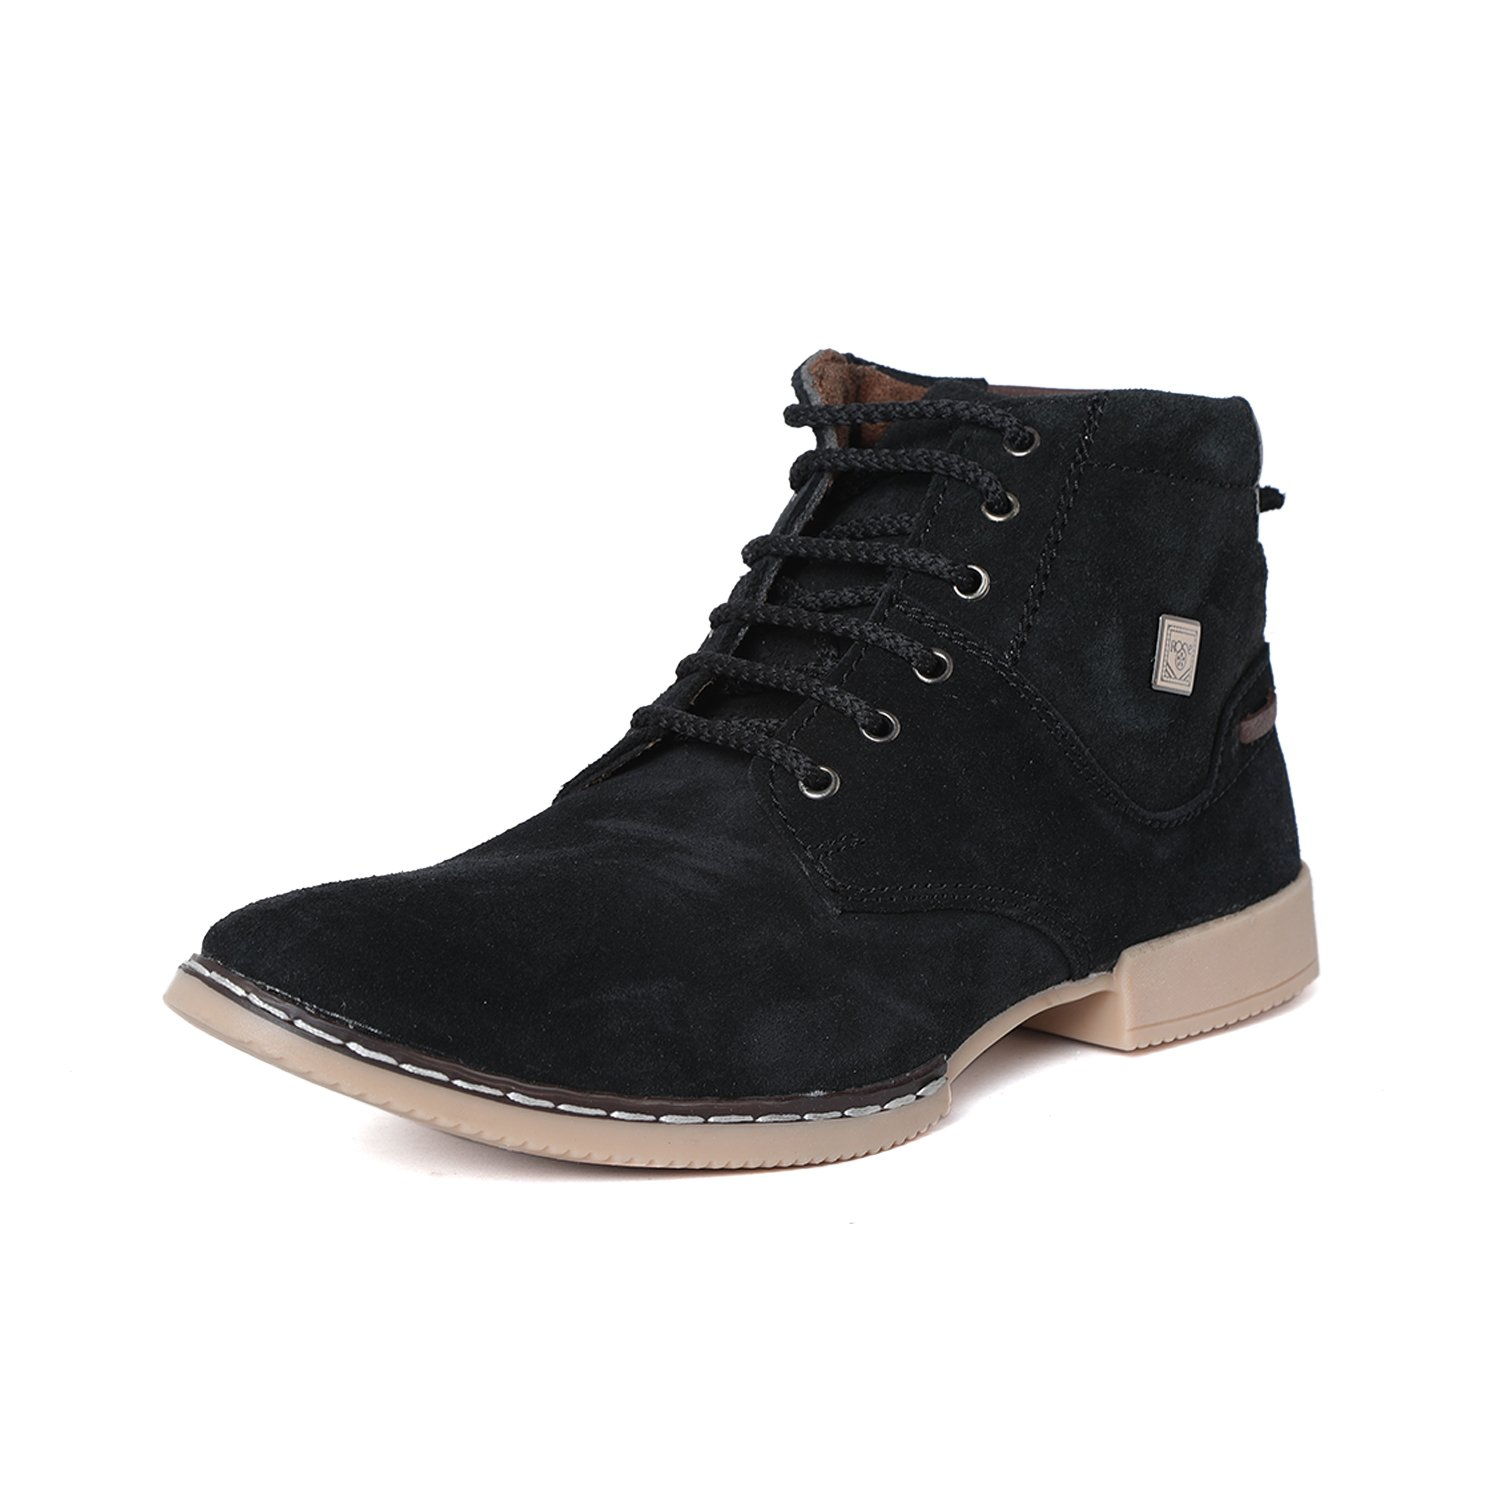 T-Rock Vision Men's Suede Synthetic Leather Black Shoes/ Dress Boots/ Vintage Lace-up Party Wear